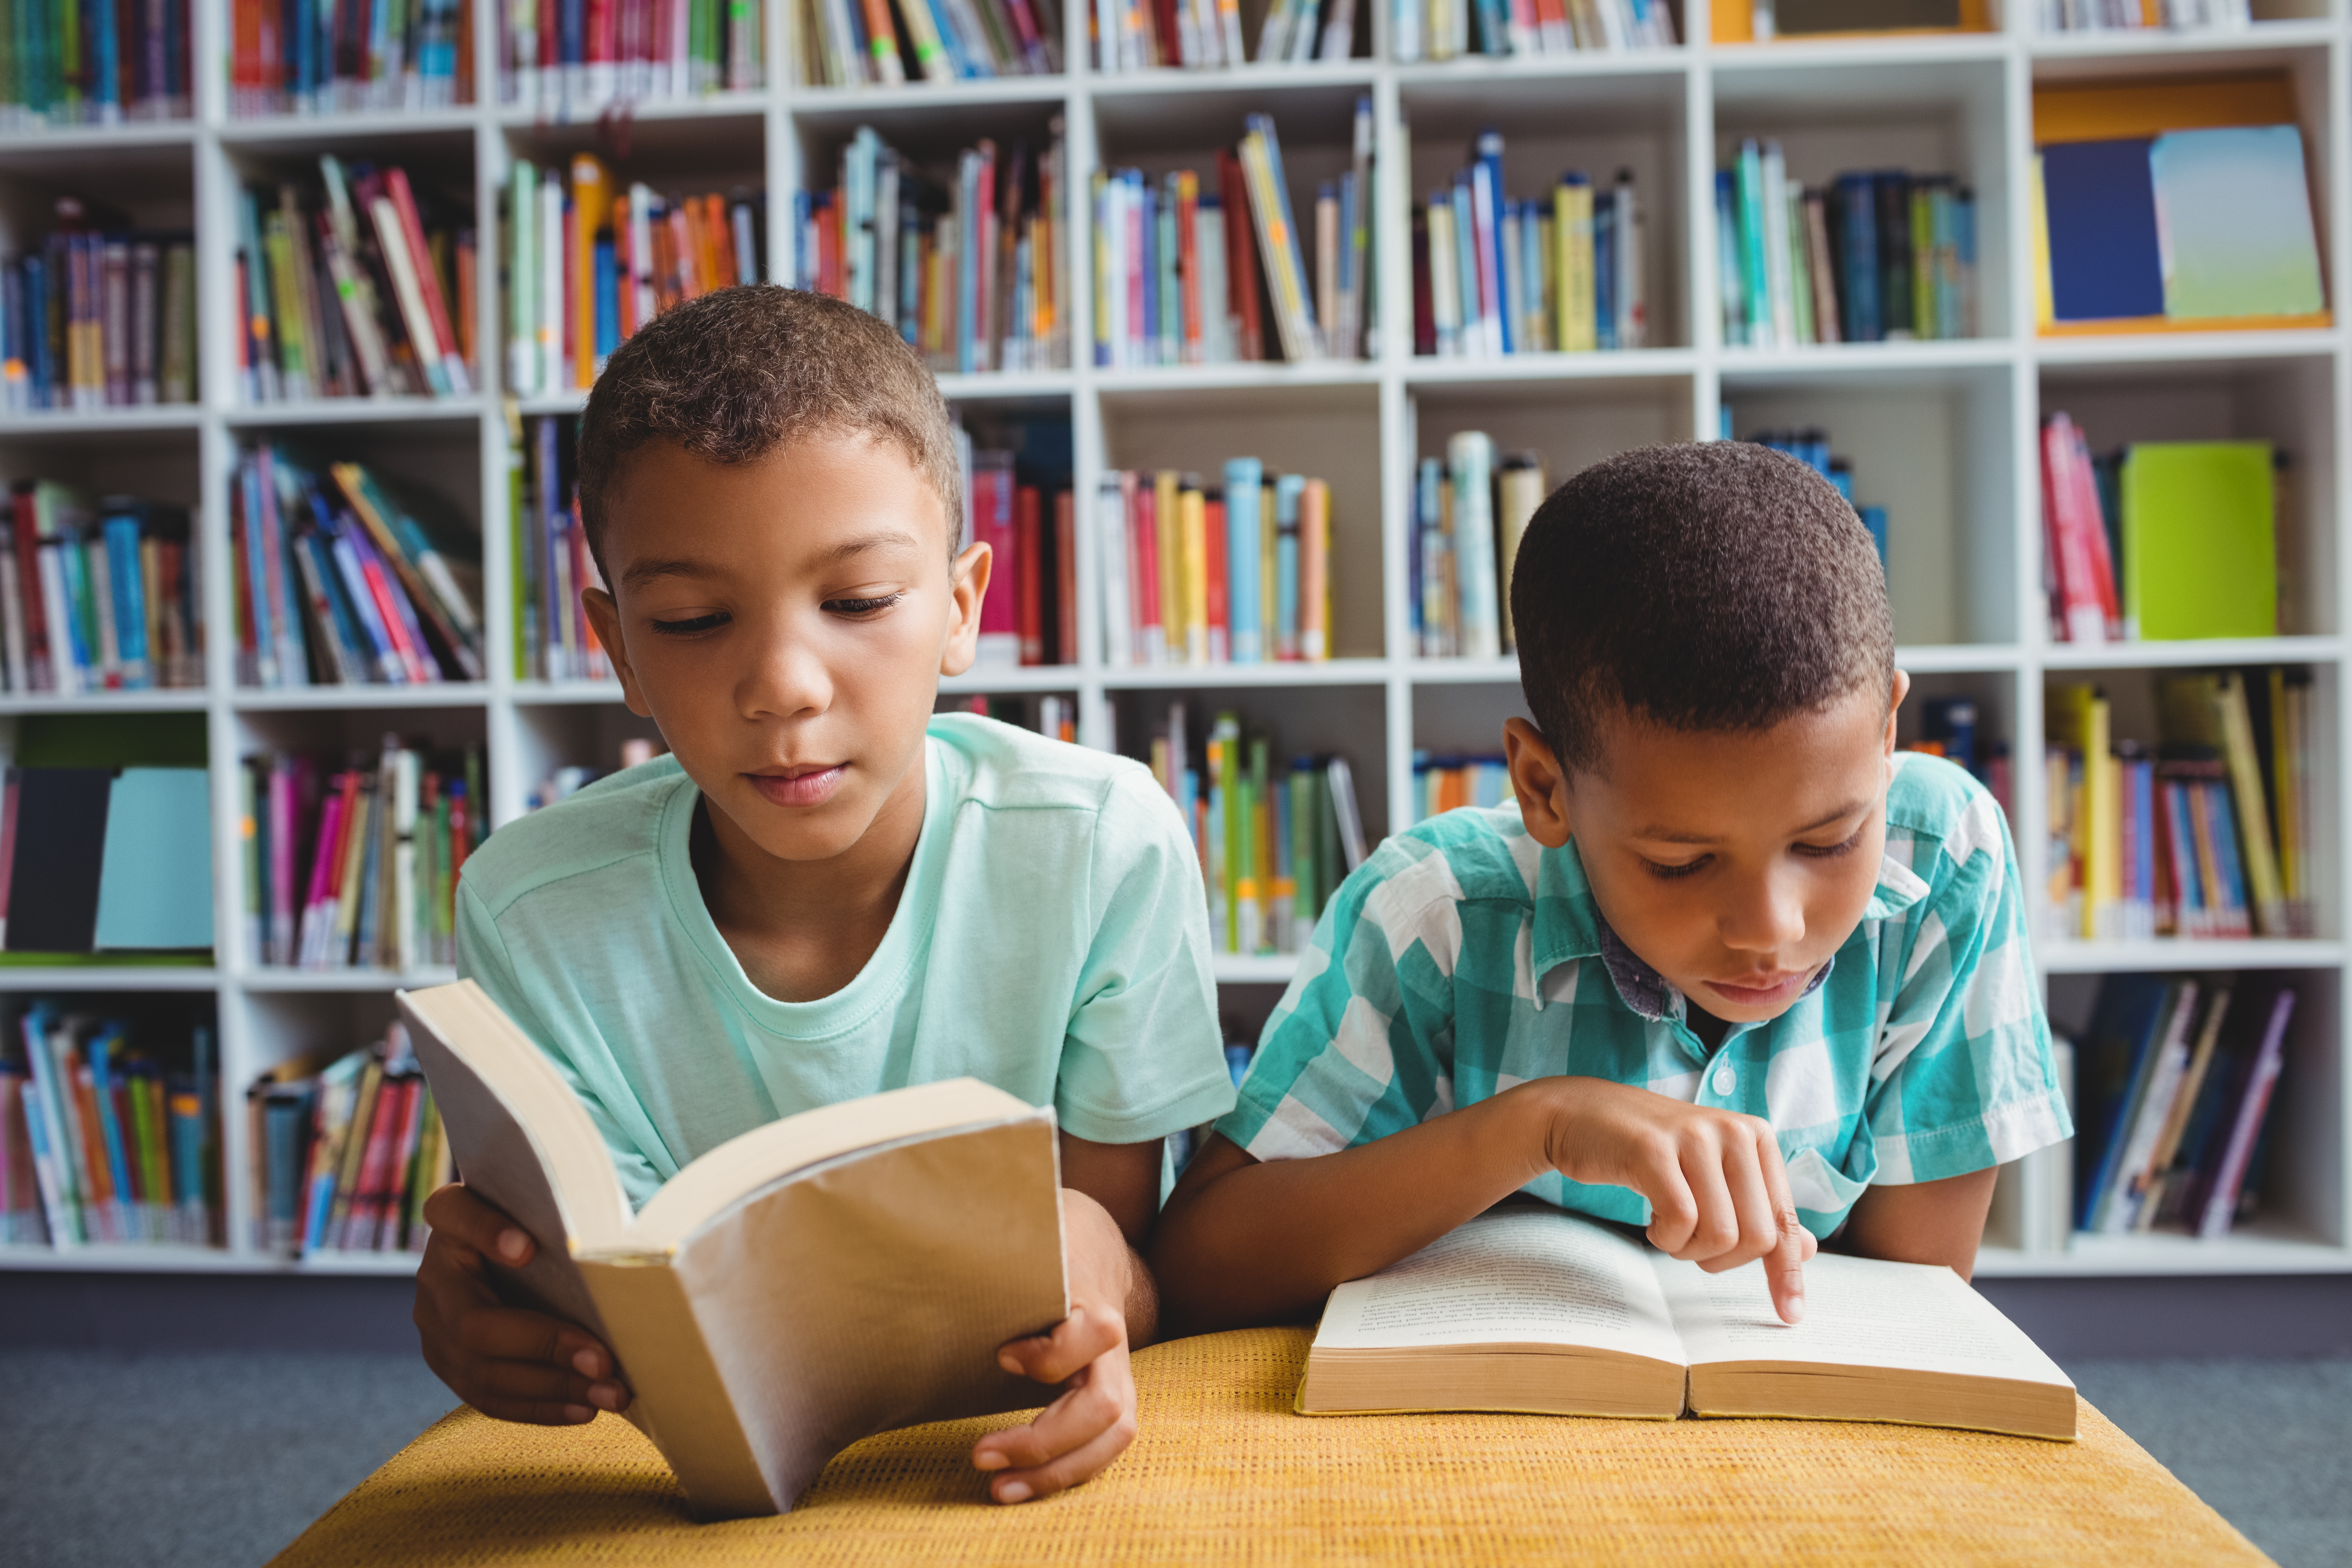 Visiting the library is a great way to keep children learning this summer